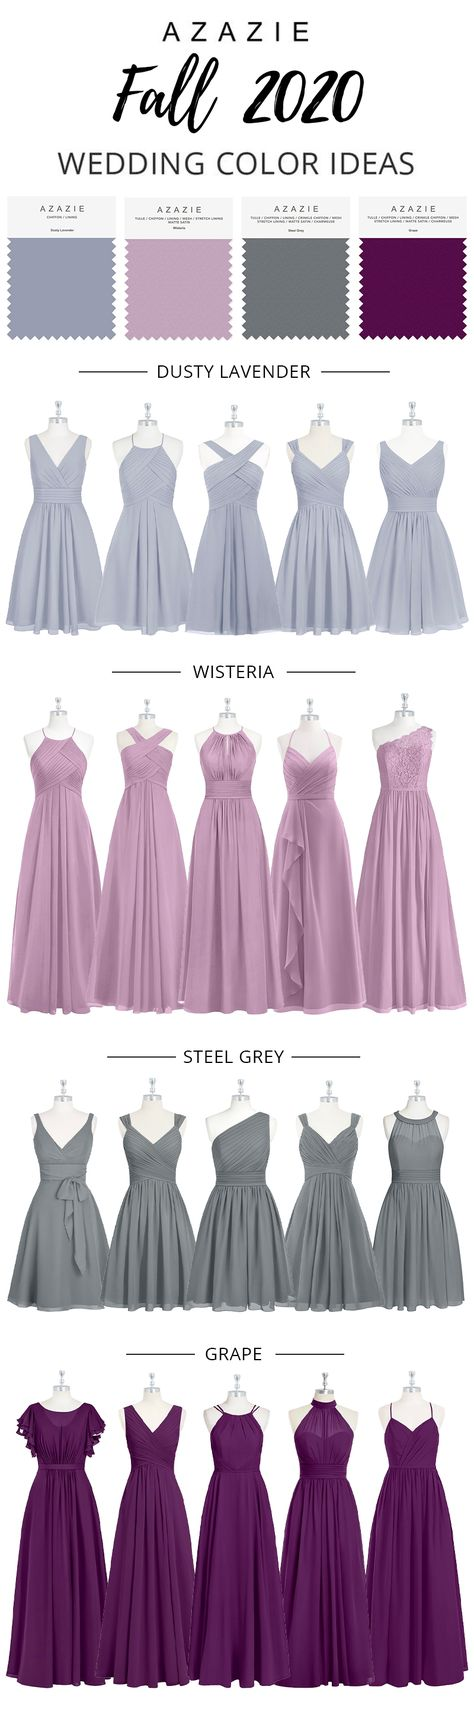 The colors of these bridesmaid dresses are wisteria, grape and steel grey. Get your wedding color ideas at Azazie.com with our 600+ styles in 80+ color options. #azazie #azaziebridesmaiddresses #wedding #weddingcolors #weddingcolorideas #bridesmaiddresses #bridesmaiddress #bridesmaid #bridesmaids #maidofhonor #chiffonbridesmaiddress #bridesmaiddresseslong #lacebridesmaiddresses #fallwedding #fallweddingideas #fallweddingcolors #winterwedding #winterweddingideas #winterweddinginspiration